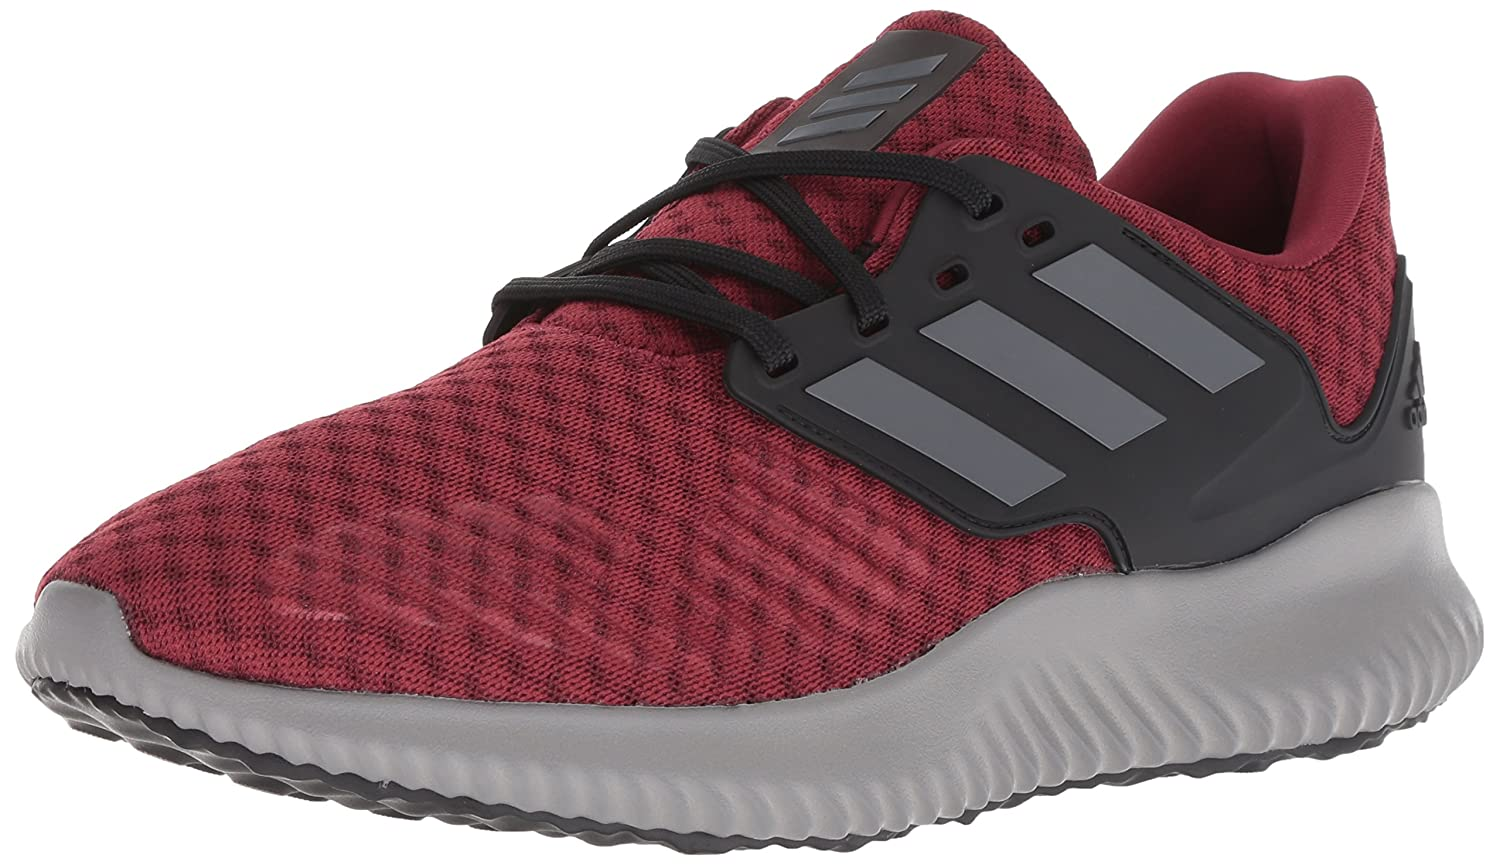 Noble Maroon Night Metallic noir 40.5 EU adidas Alphabounce Rc.2 Chaussures Athlétiques